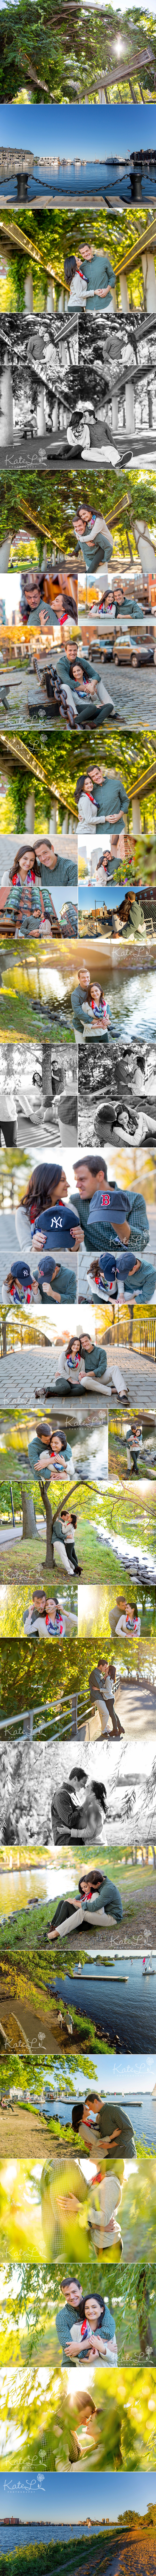 A Boston photographer documents an engaged couple in the North End, including Christopher Columbus Park, the North End, and the Charles River Esplanade.